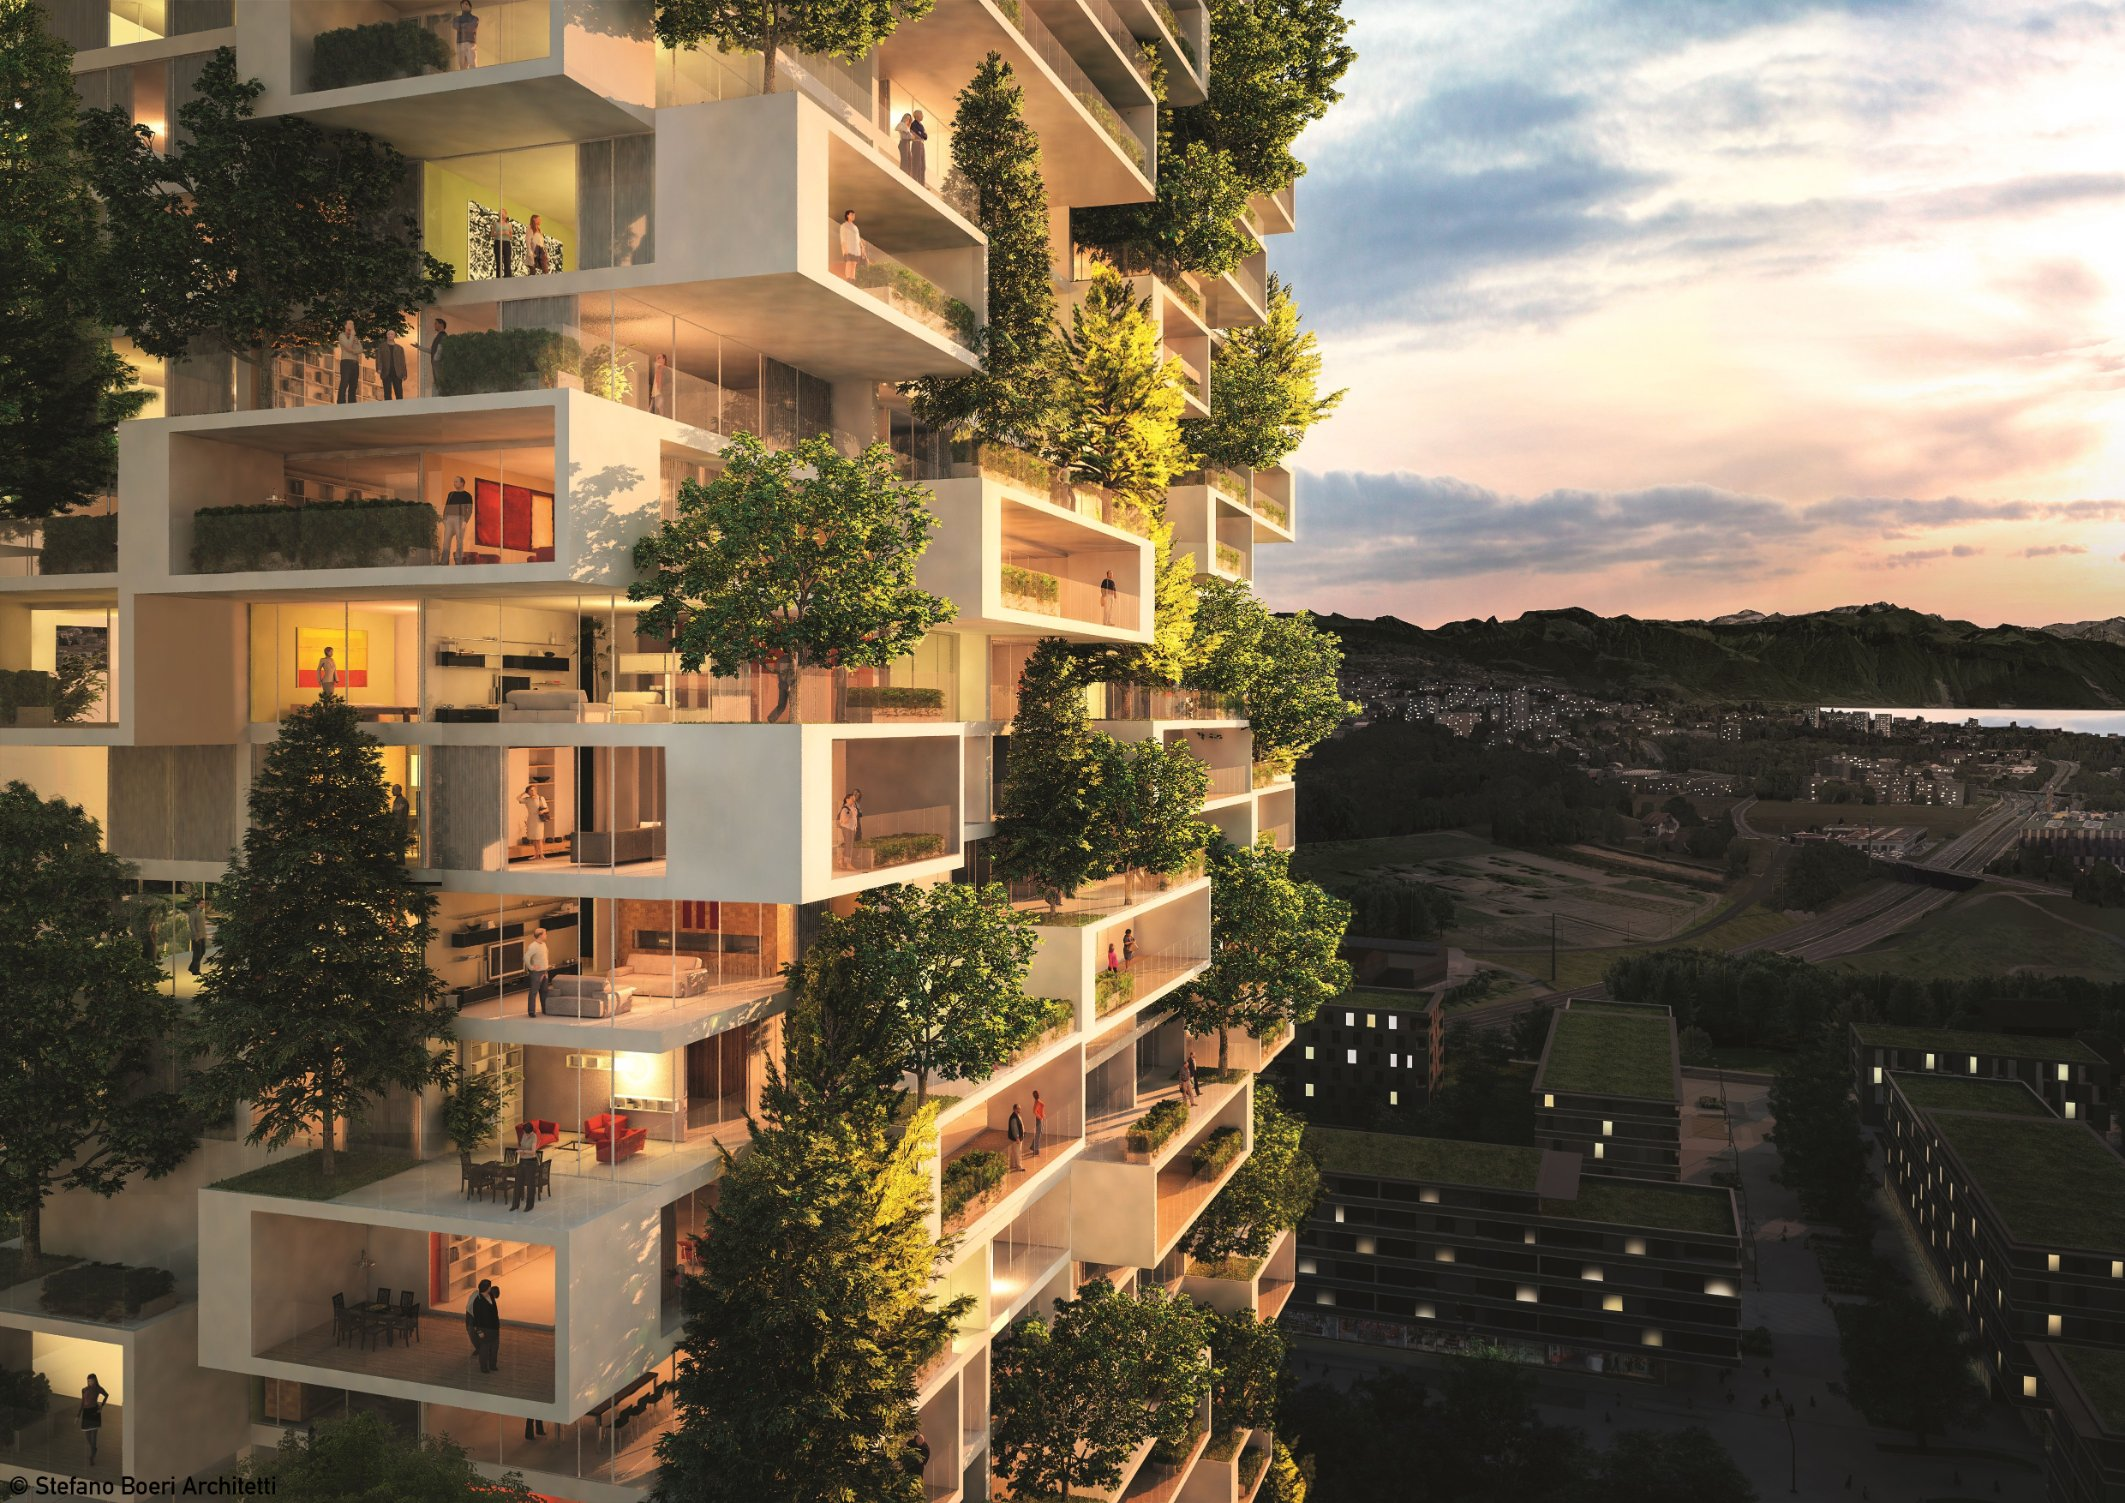 Gardens in the sky: The rise of eco urban architecture - CNN Style